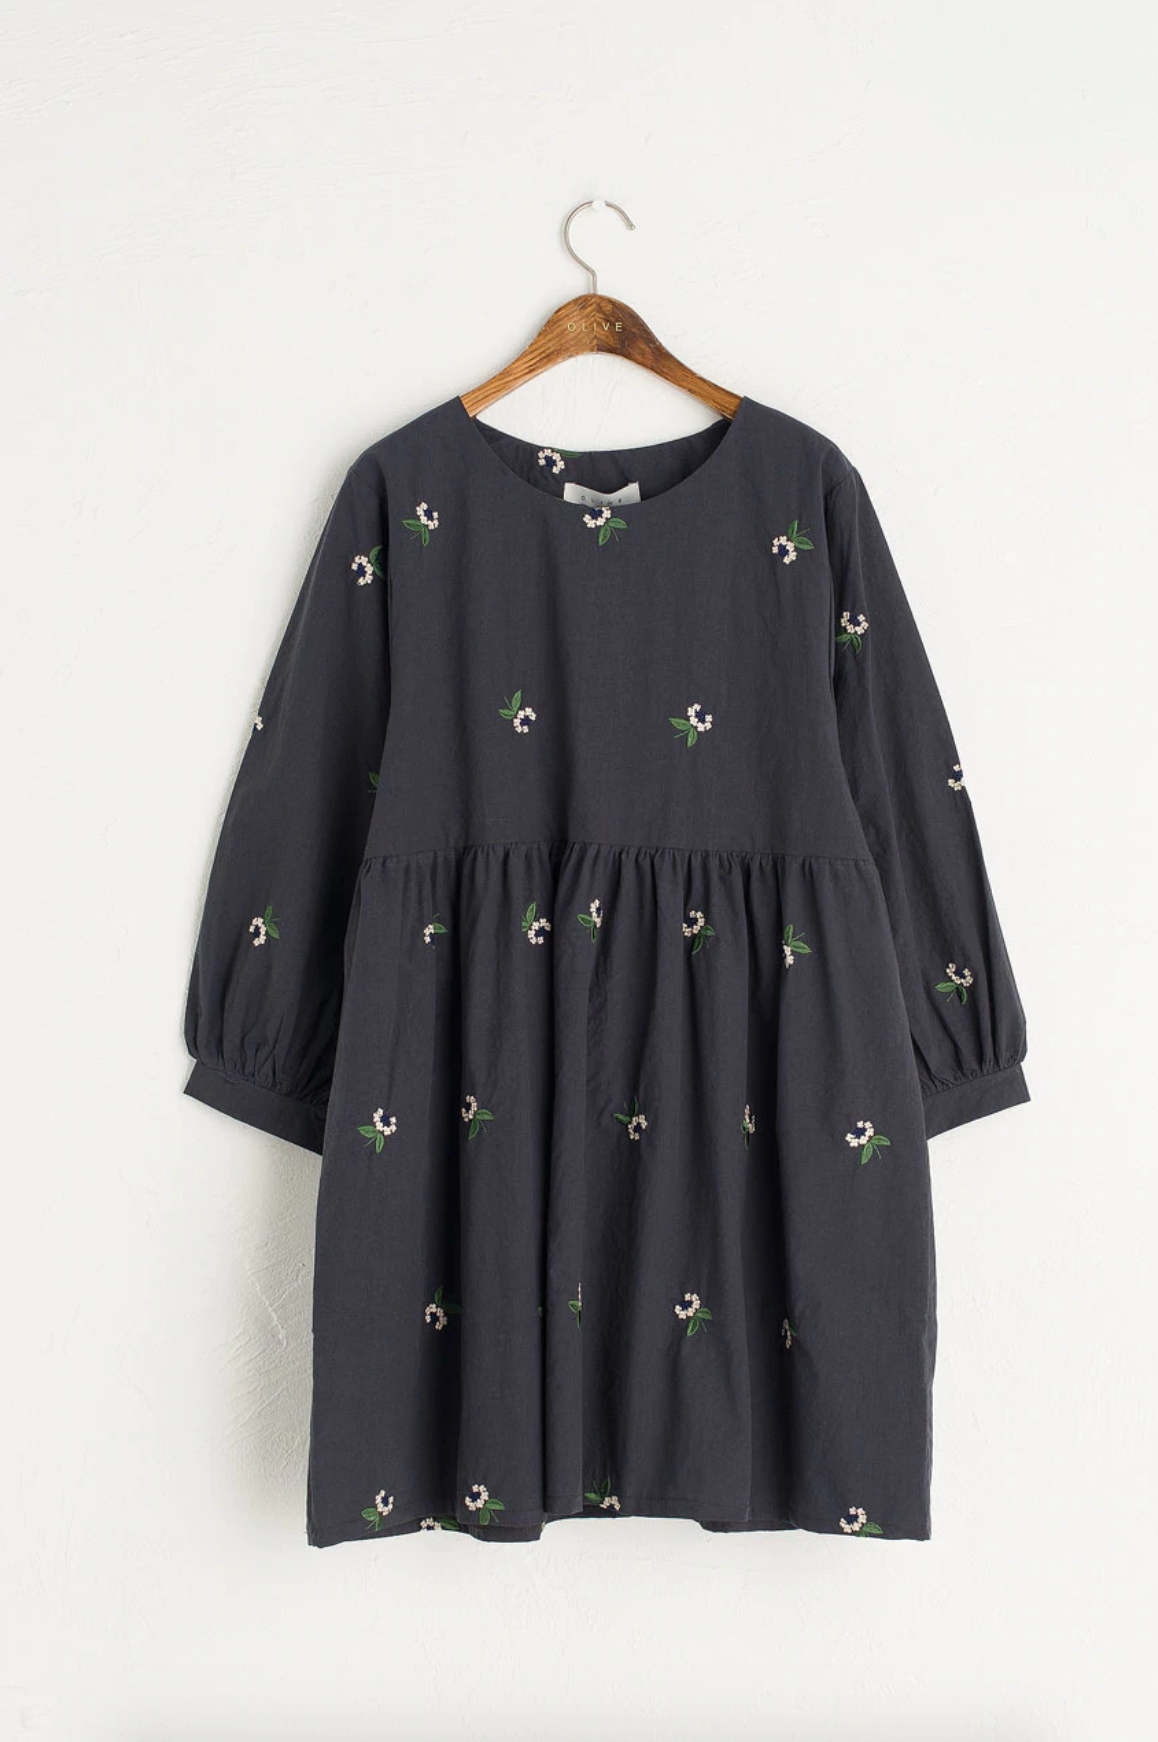 olive elderflower embroidered dress - Smock dresses are something that I've really come to love over the past couple of years. Mostly because the thought of now wearing something tight is not appealing to me in the slightest. I cannot think of anything worse than something figure hugging and I'm all about comfort and I think smock dresses are the epitome of summertime comfort. And although this dress is more of an S/S piece it will be still something I can wear in the cooler months too with a pair of tights and loafers. Typically I'm not someone who loves patterned items, apart from stripes obviously but the little floral details are really sweet on this.